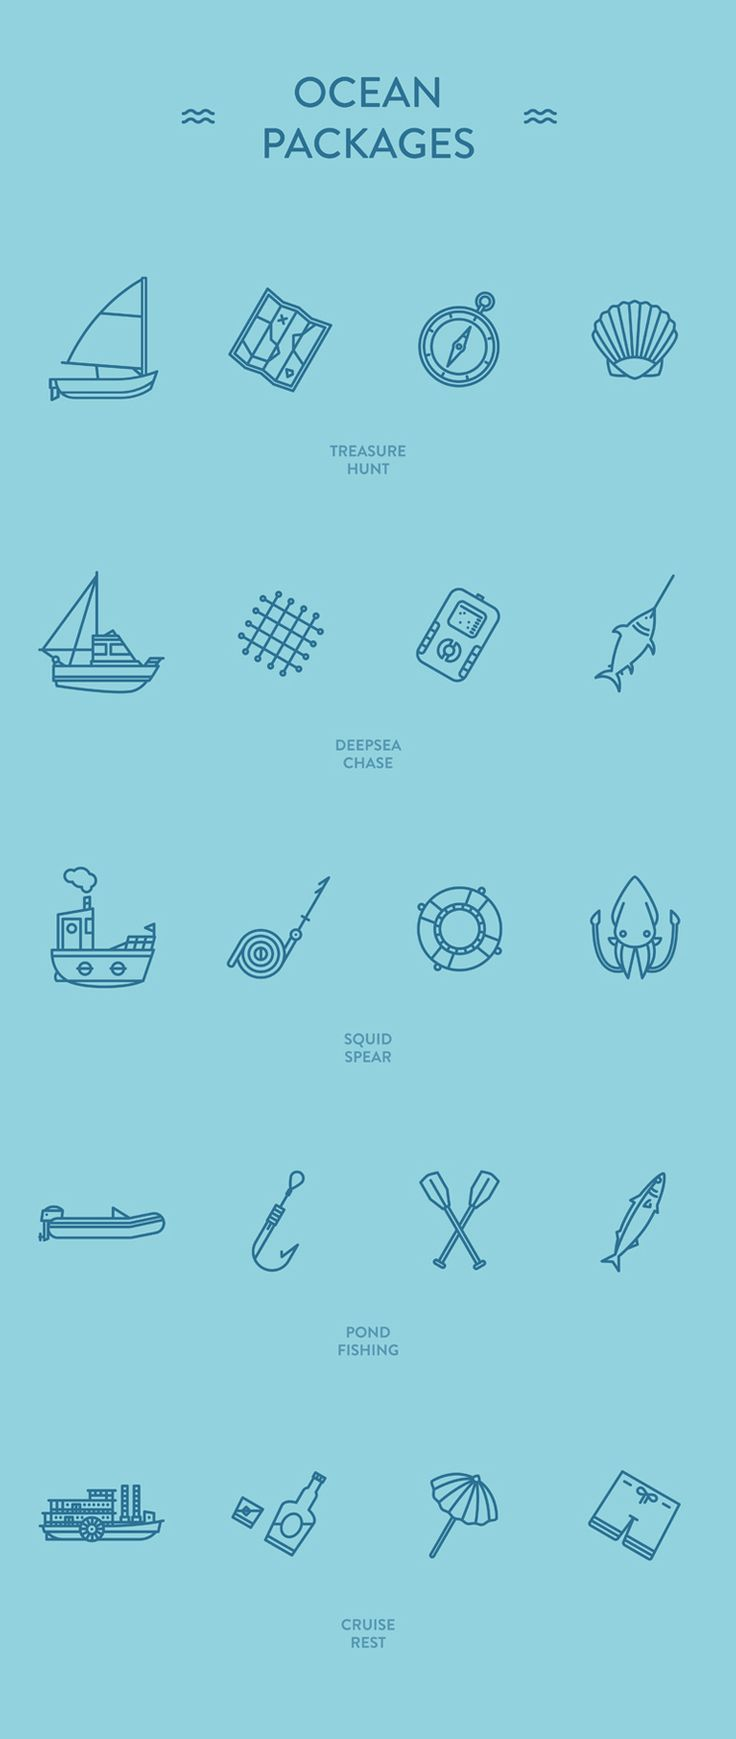 Ocean Packages - Free icon sets on Behance